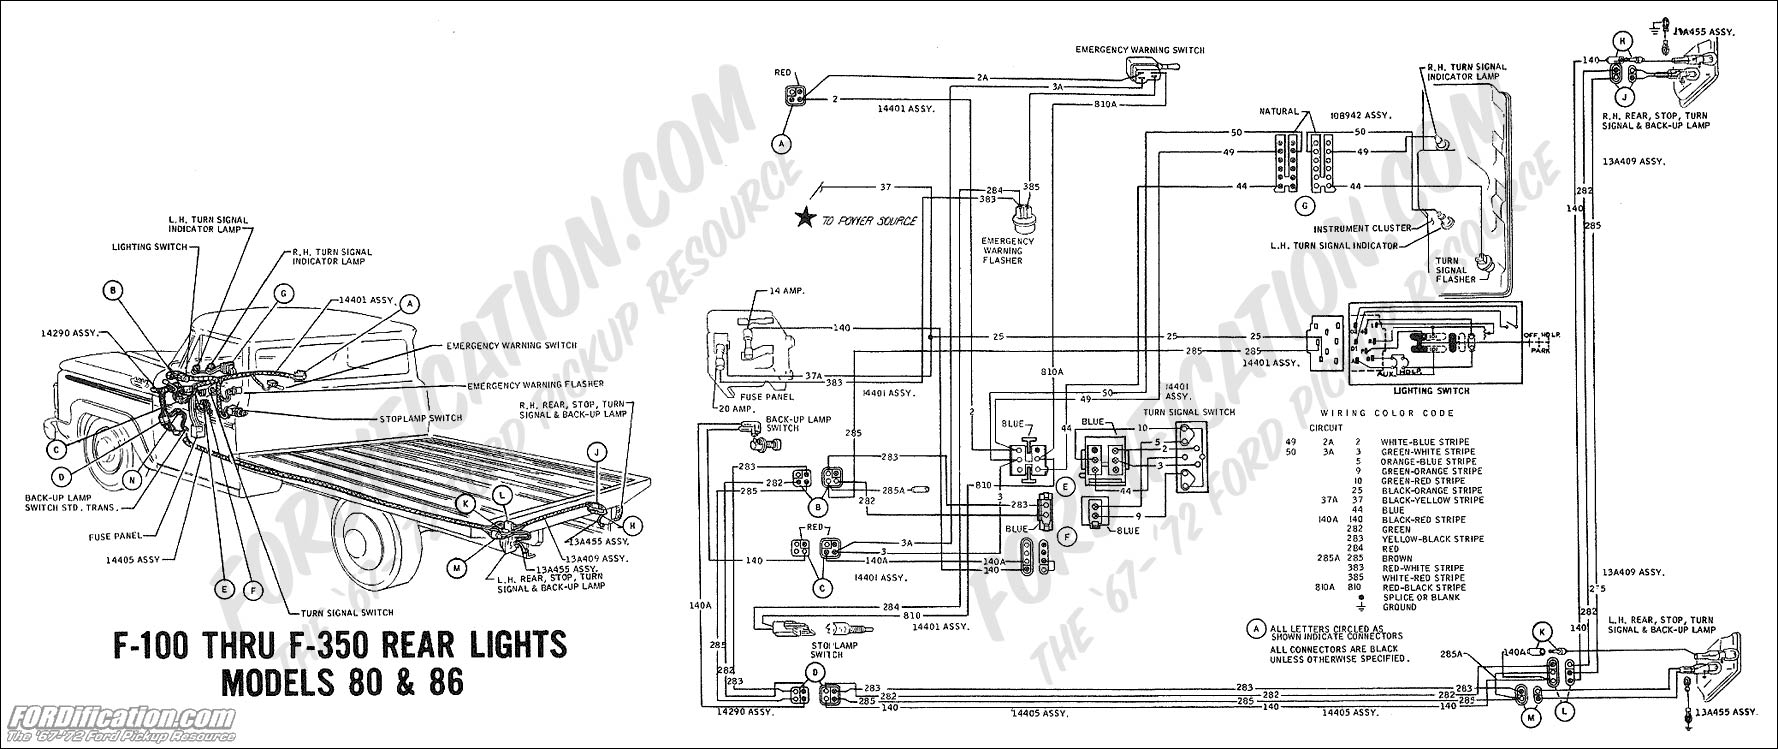 86 F150 Wiper Wiring Diagram Real 1977 Ford Starter Solenoid Truck Technical Drawings And Schematics Section H Rh Fordification Com 1986 F 150 Engine